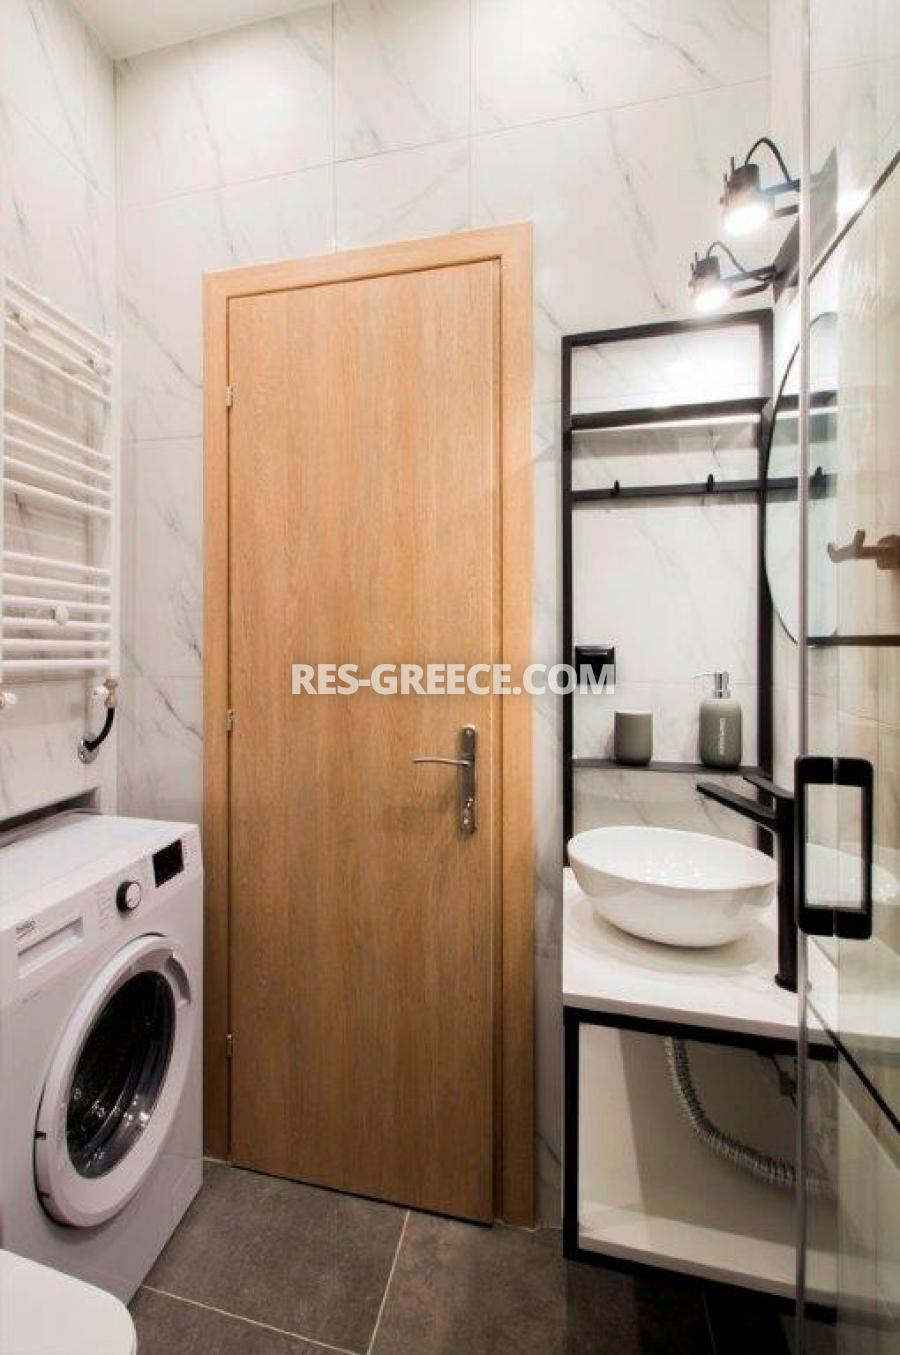 Sokratous 1, Central Macedonia, Greece - apartments in Thessaloniki center for long-term or short-term rent - Photo 18